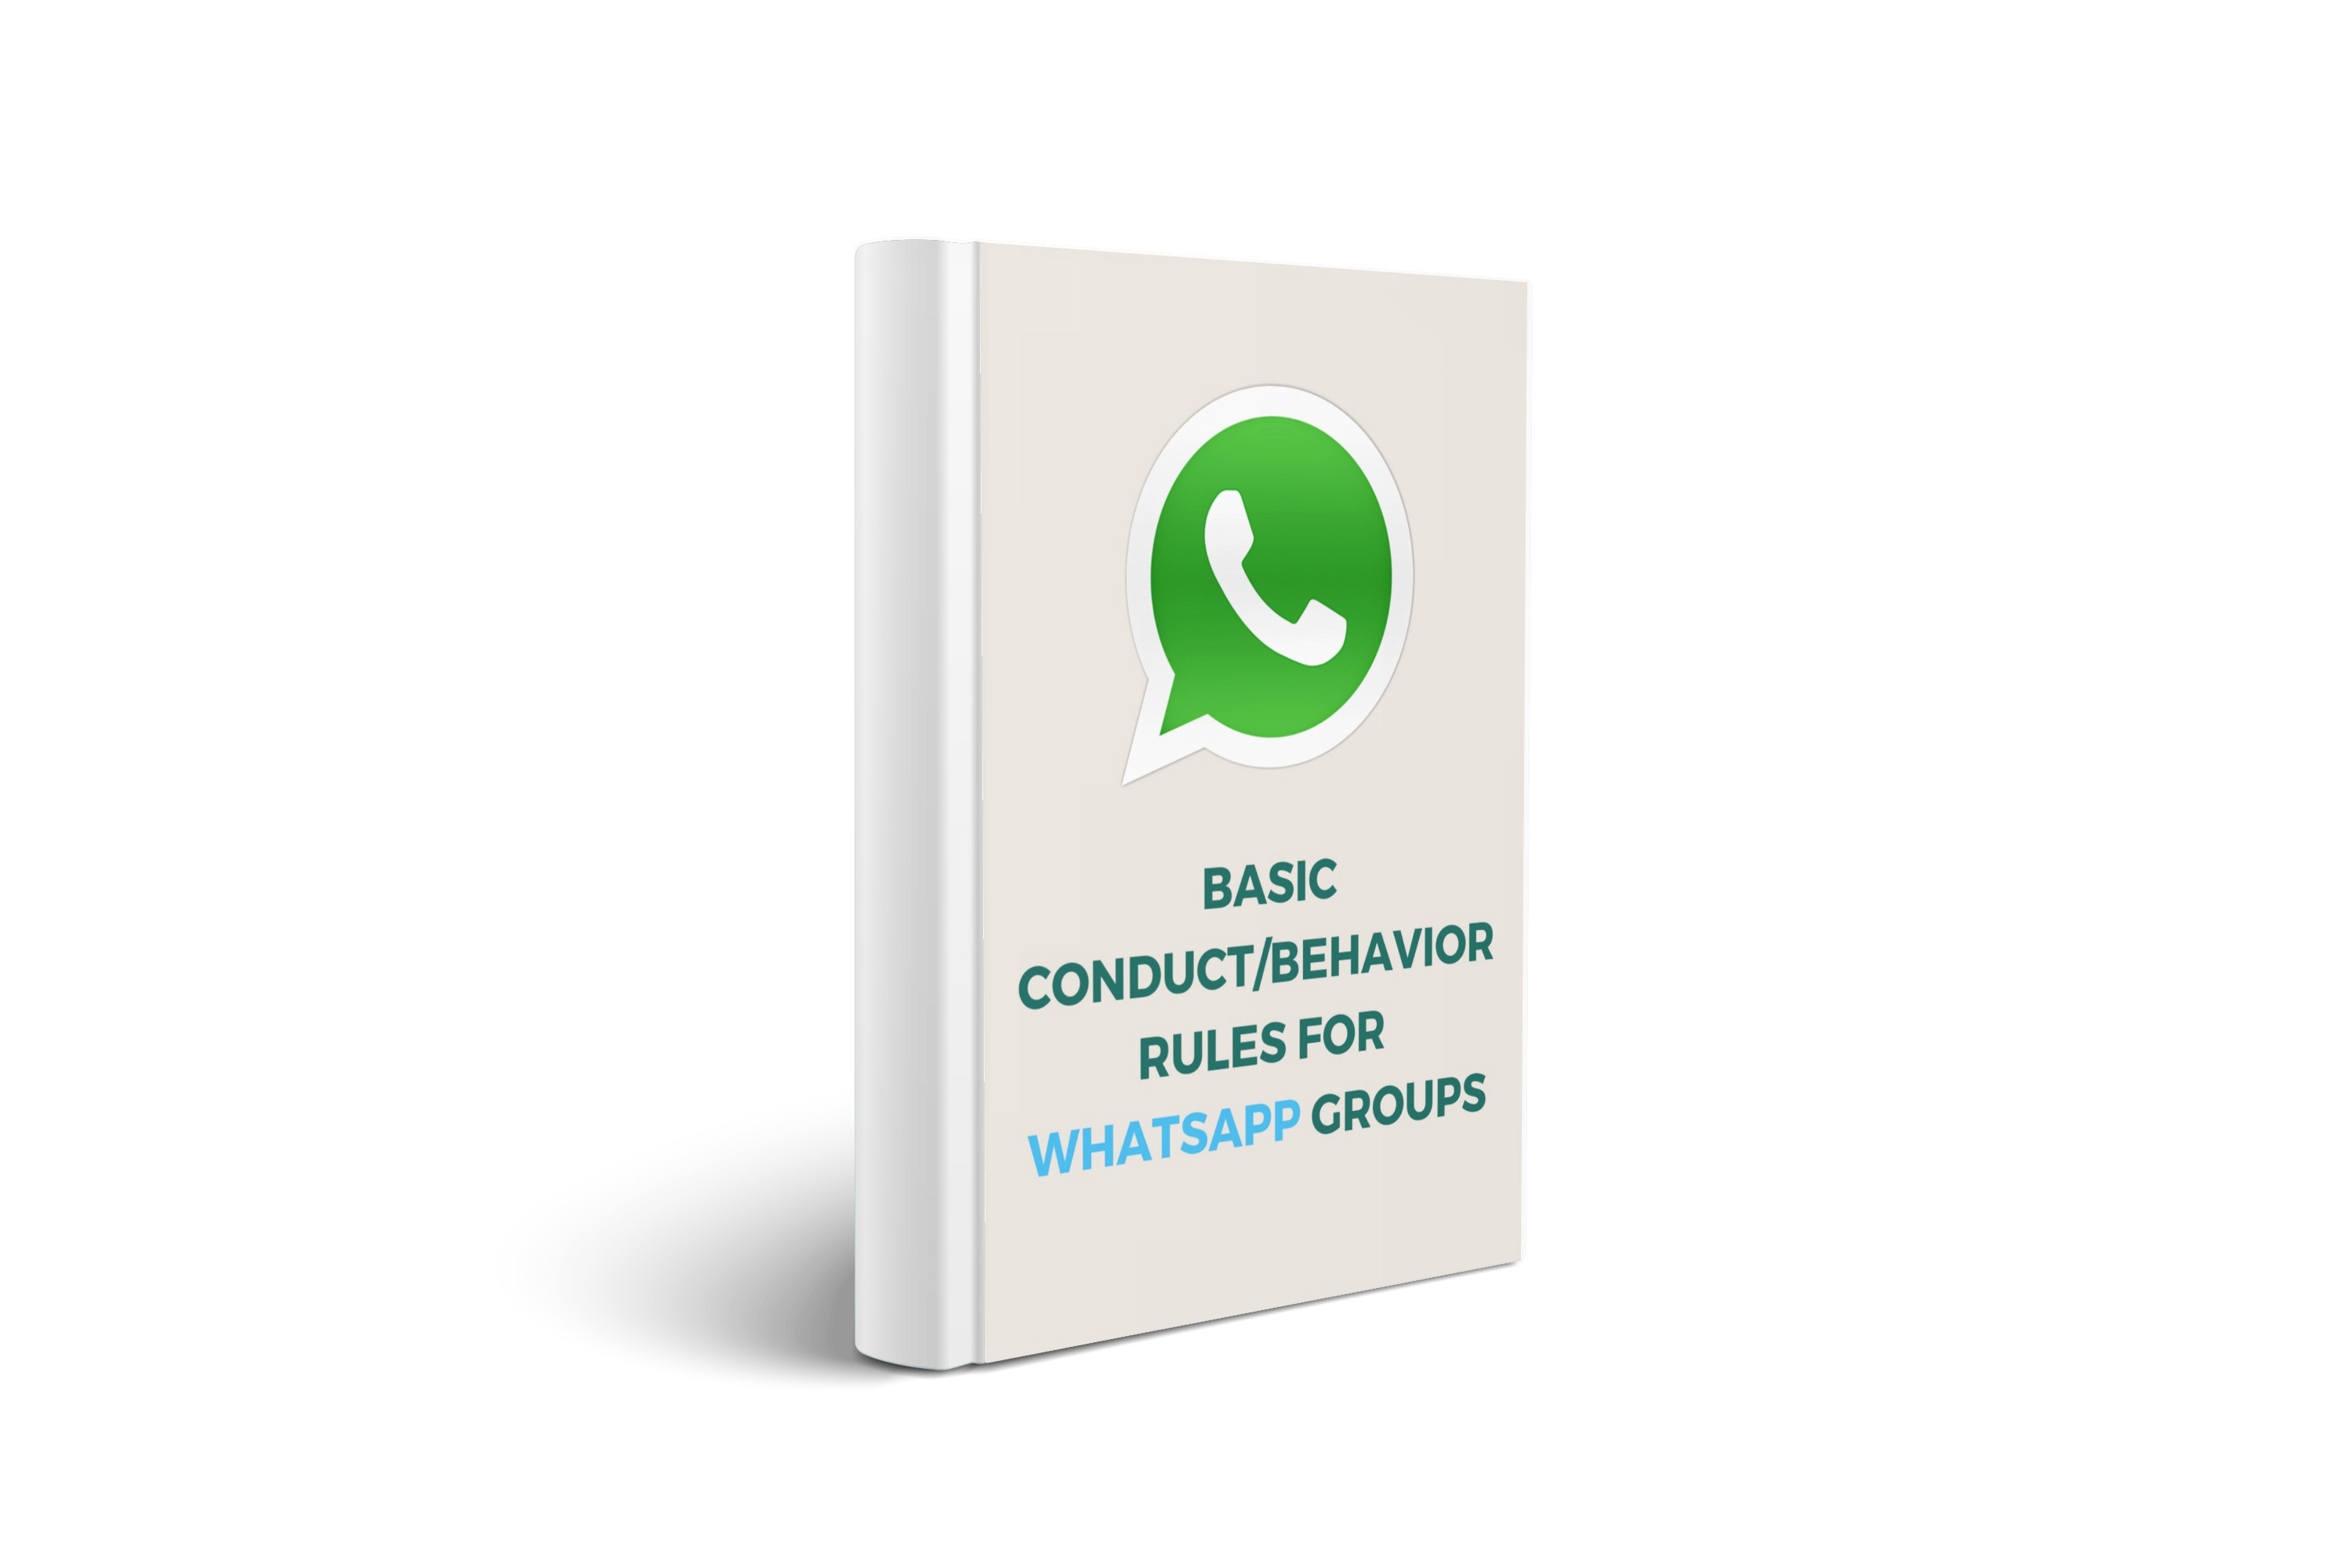 A proposal of basic conduct/behavior rules for WhatsApp Groups